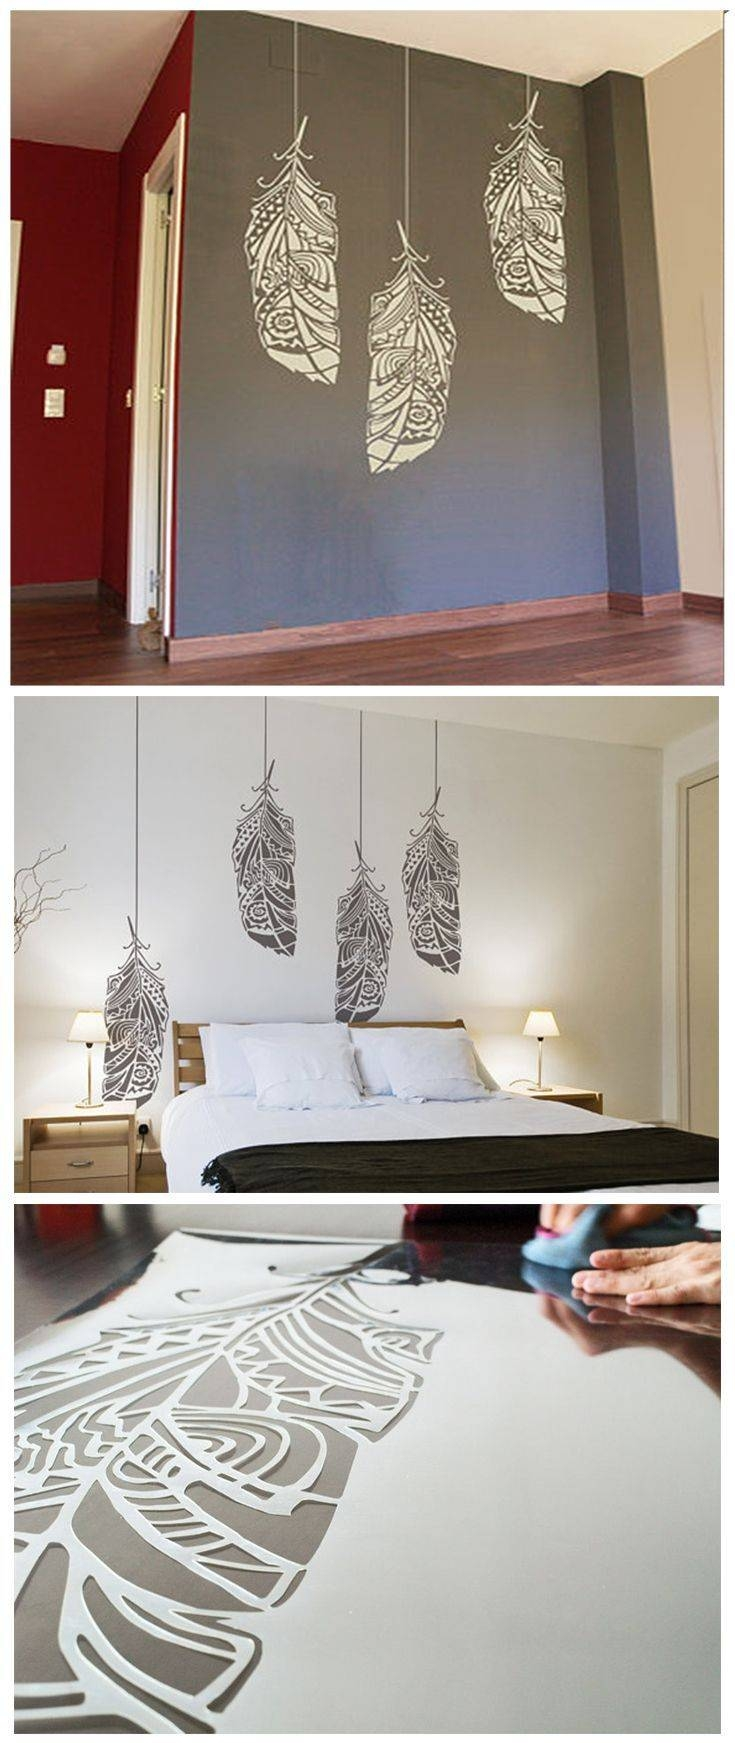 Best 25+ Wall Paintings Ideas On Pinterest | Diy Wall Painting Throughout Latest Pinterest Wall Art Decor (View 23 of 25)